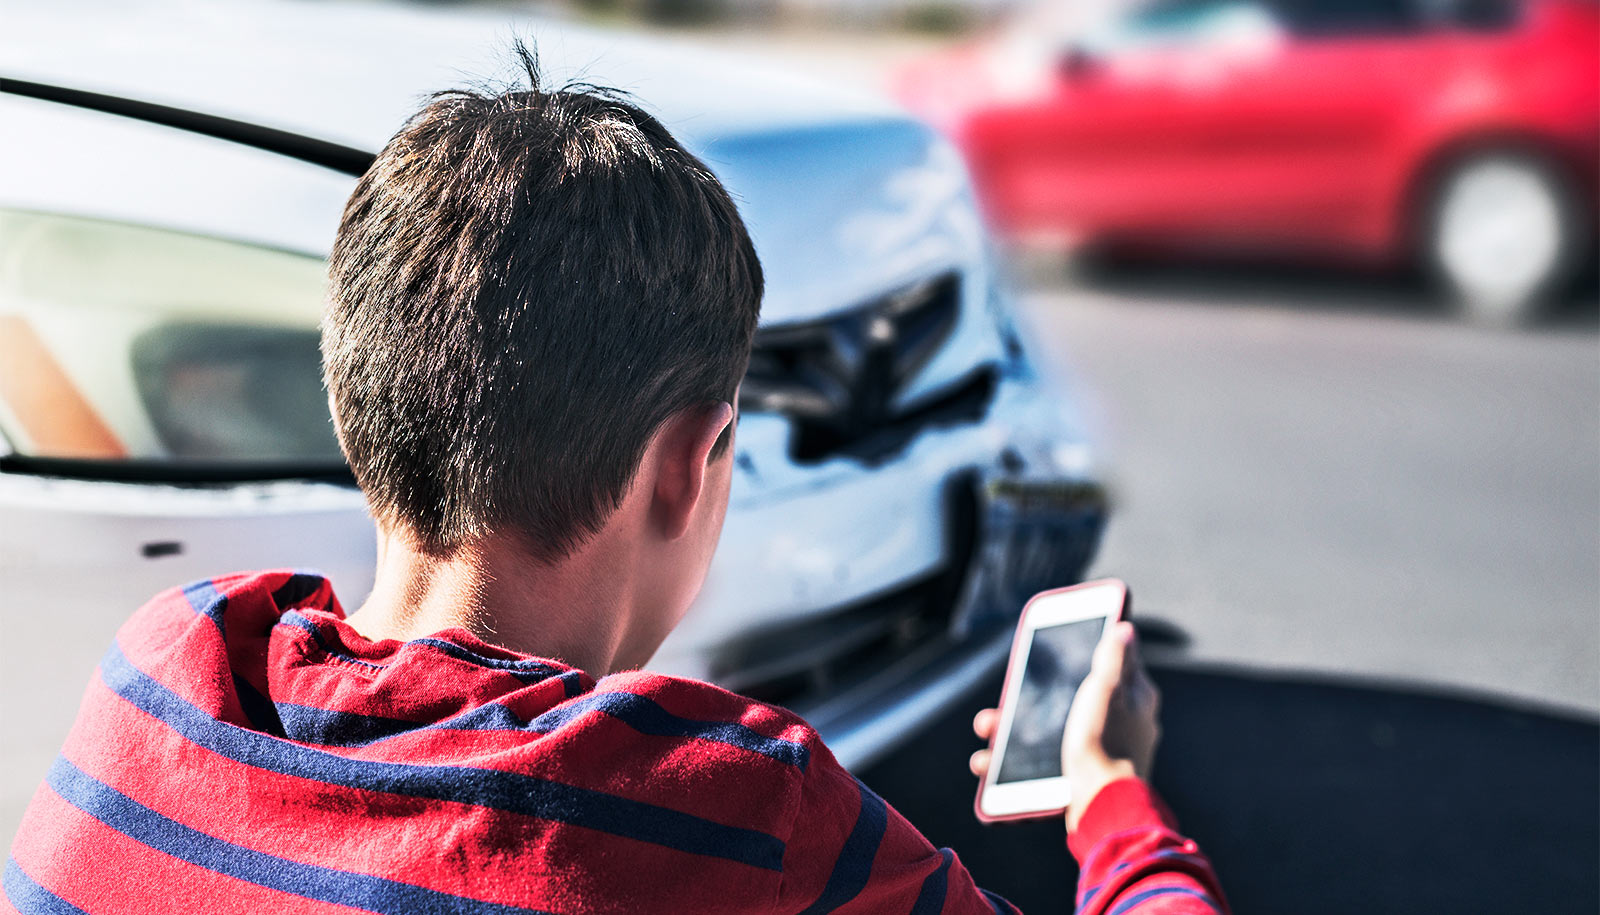 Working memory may play role in teen car crash risk